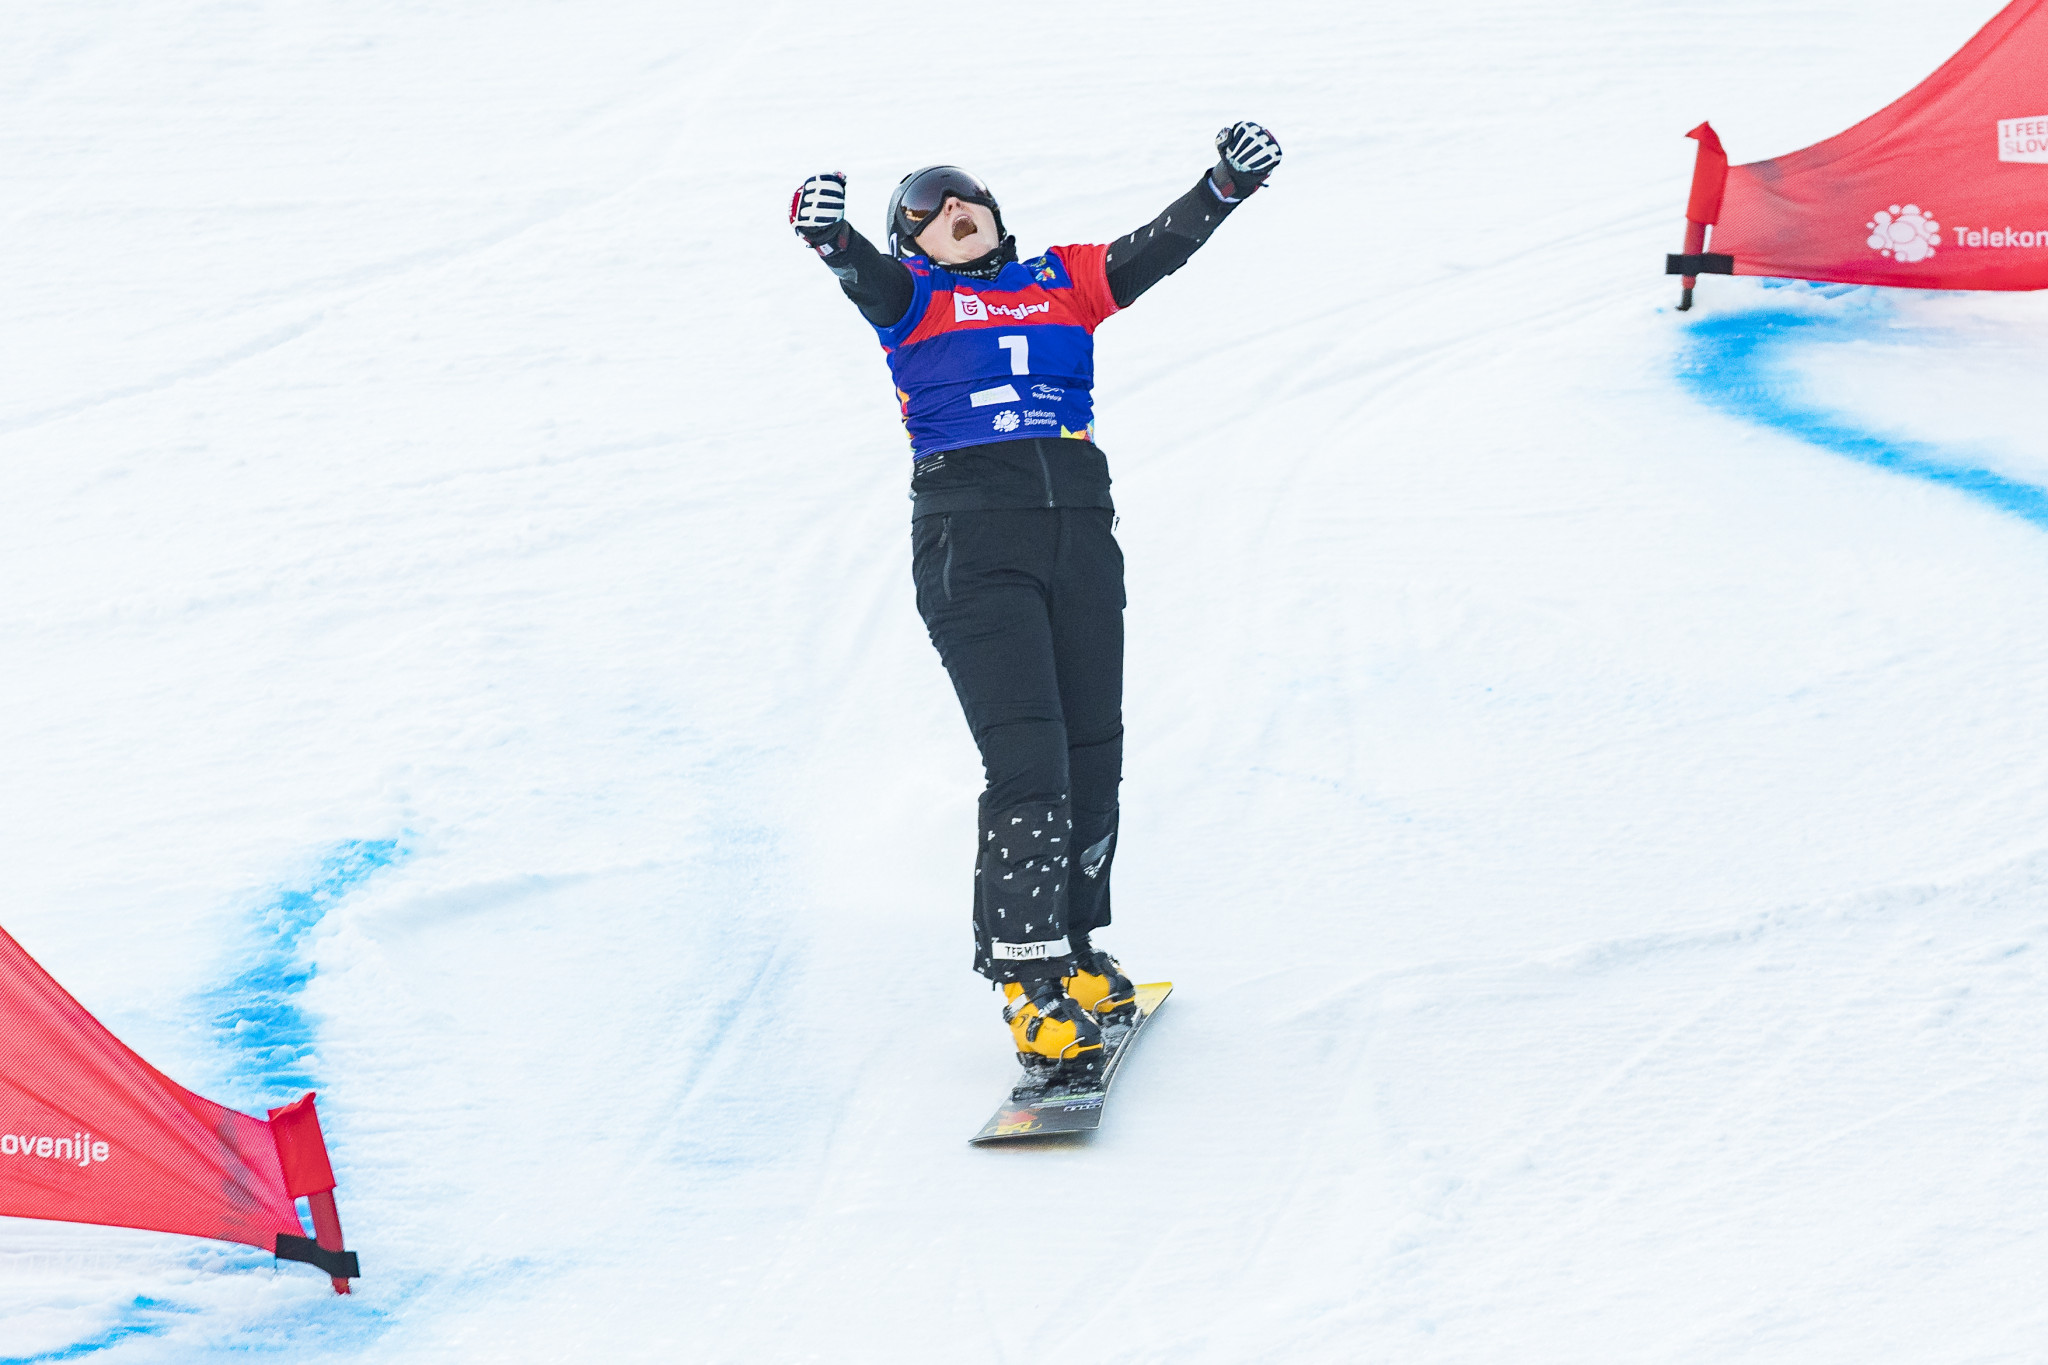 Nadyrshina wins third gold medal of FIS Junior World Championships in mixed team event